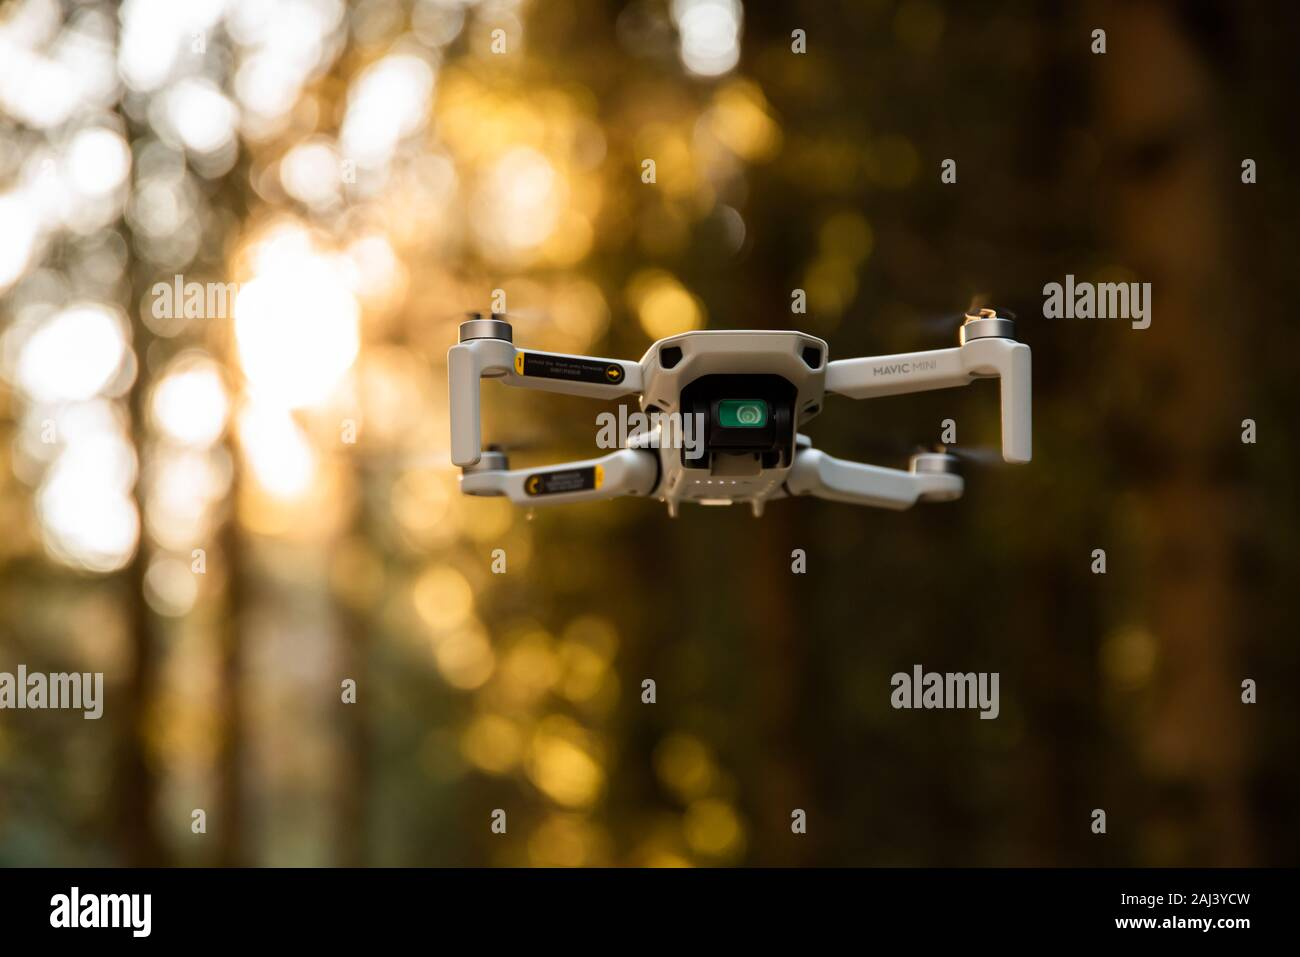 Graz Austria 02 01 2020 Close Up Shoot Of A Dji Quadcopter Drone Mavic Mini 249g Drone Flying In Sunny Forest Dji Is The Market Leader In Drones Stock Photo Alamy